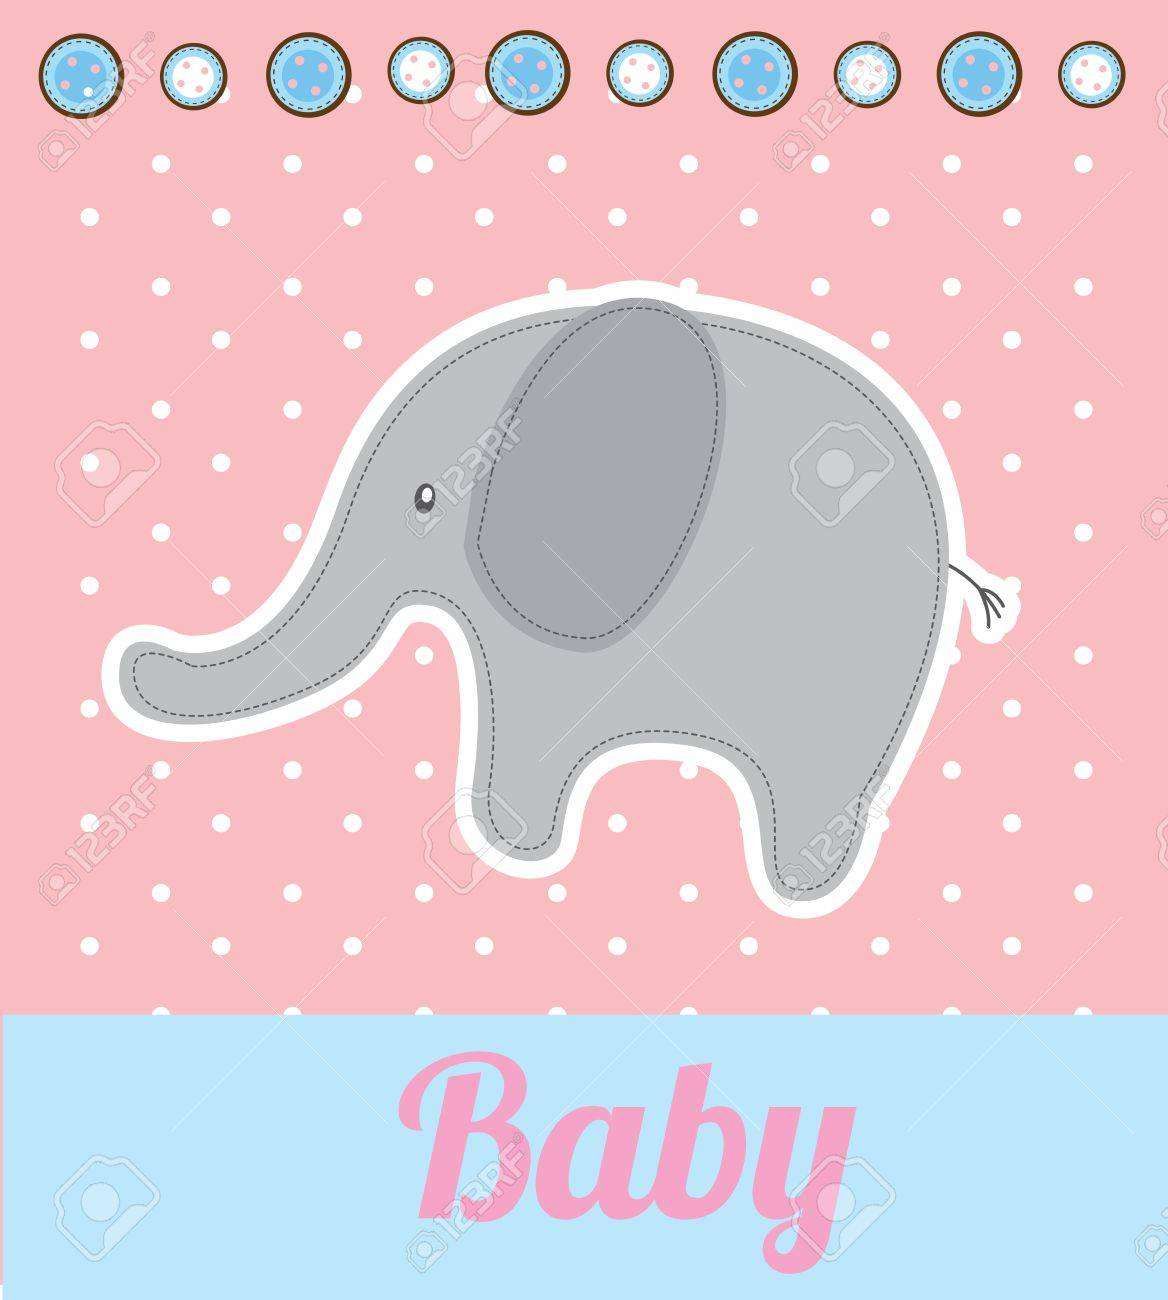 baby elephant over pink background vector illustration - 20498919